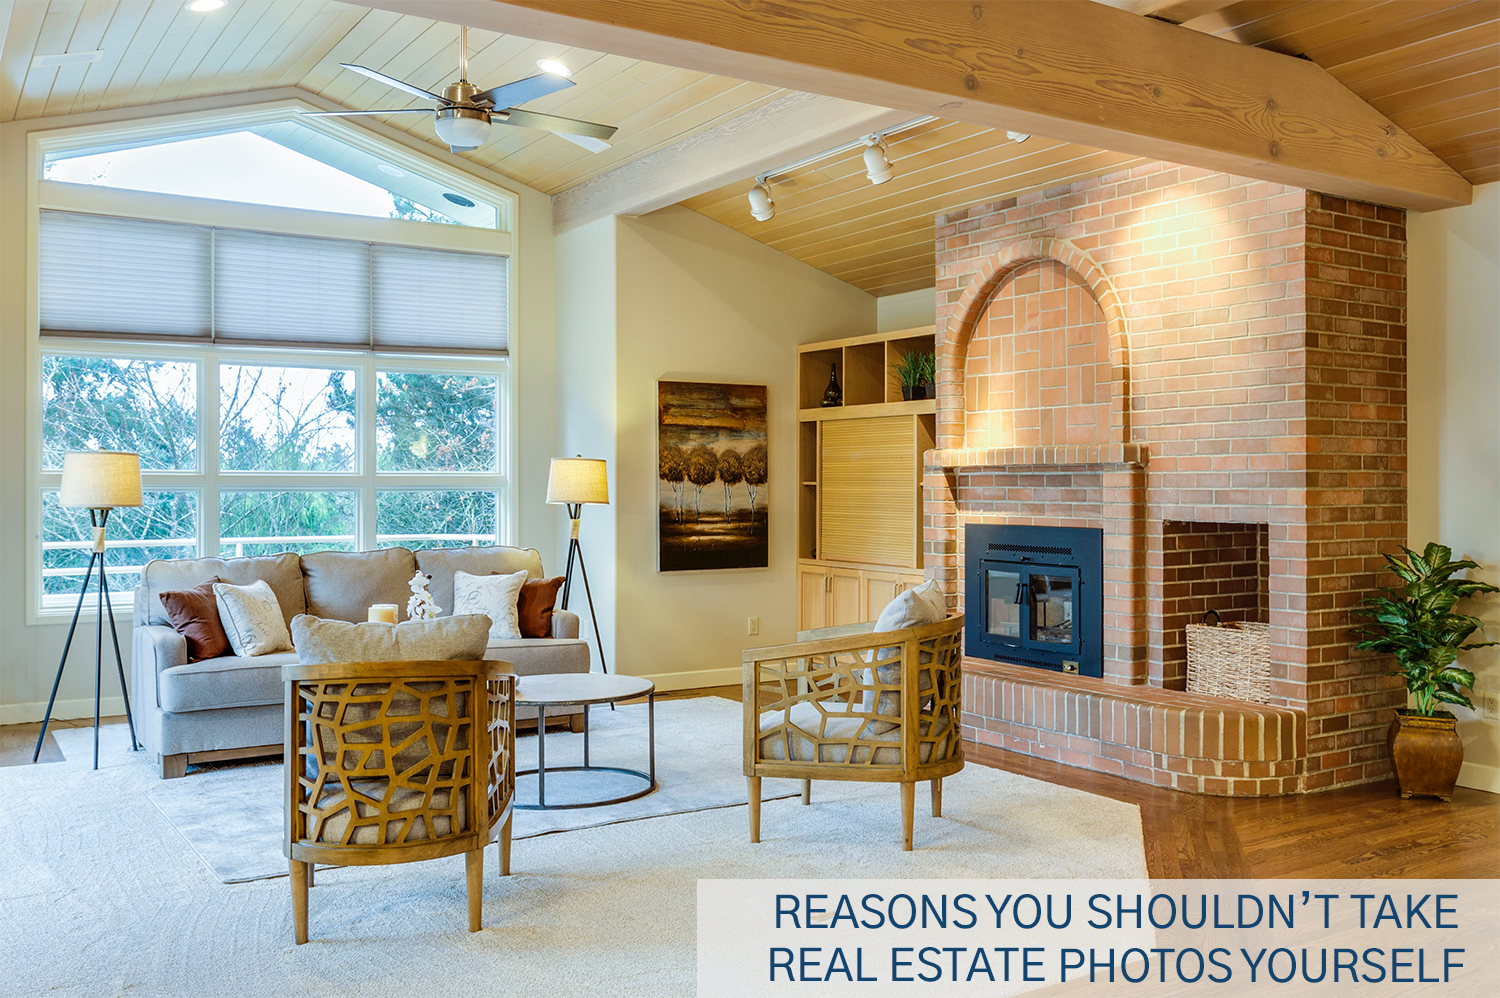 A staged living room with a brick fireplace and floor to ceiling windows.